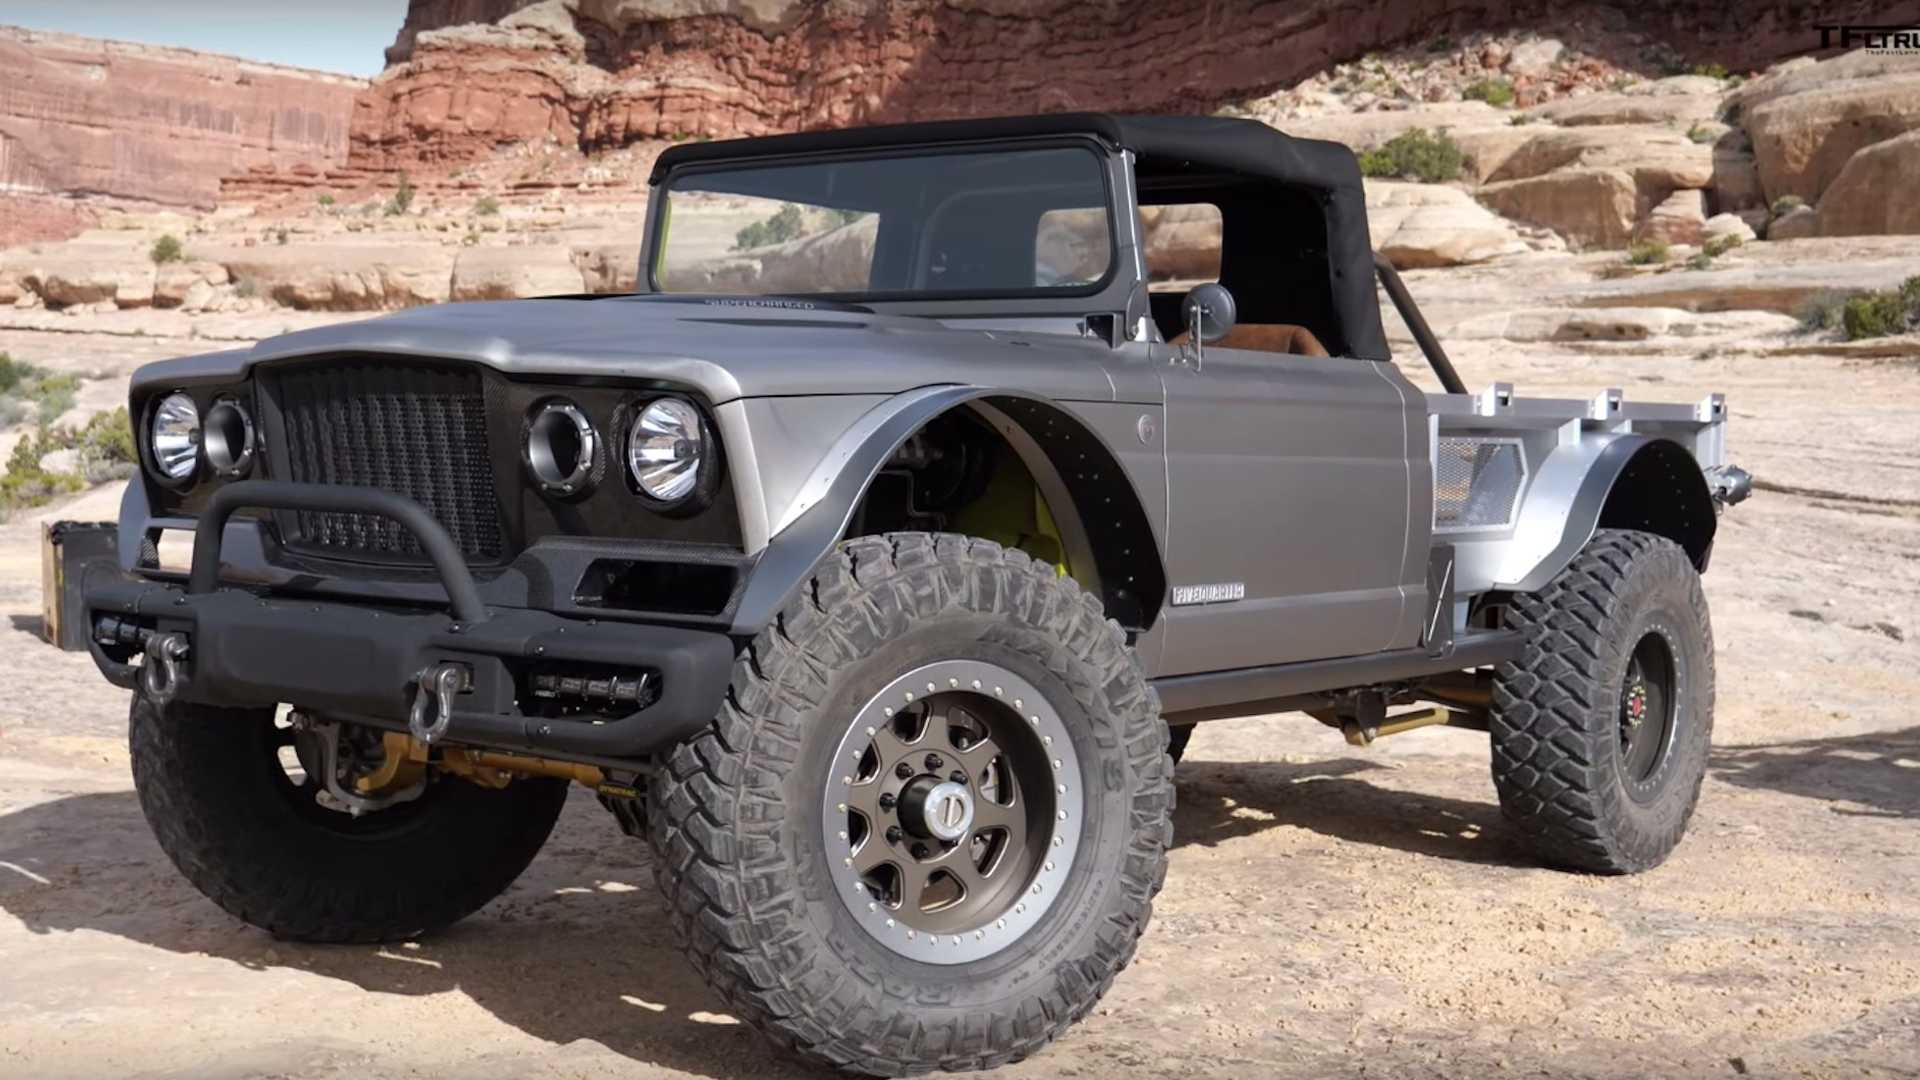 Supercharged 700 Hp Jeep Gladiator Concept Detailed On Video